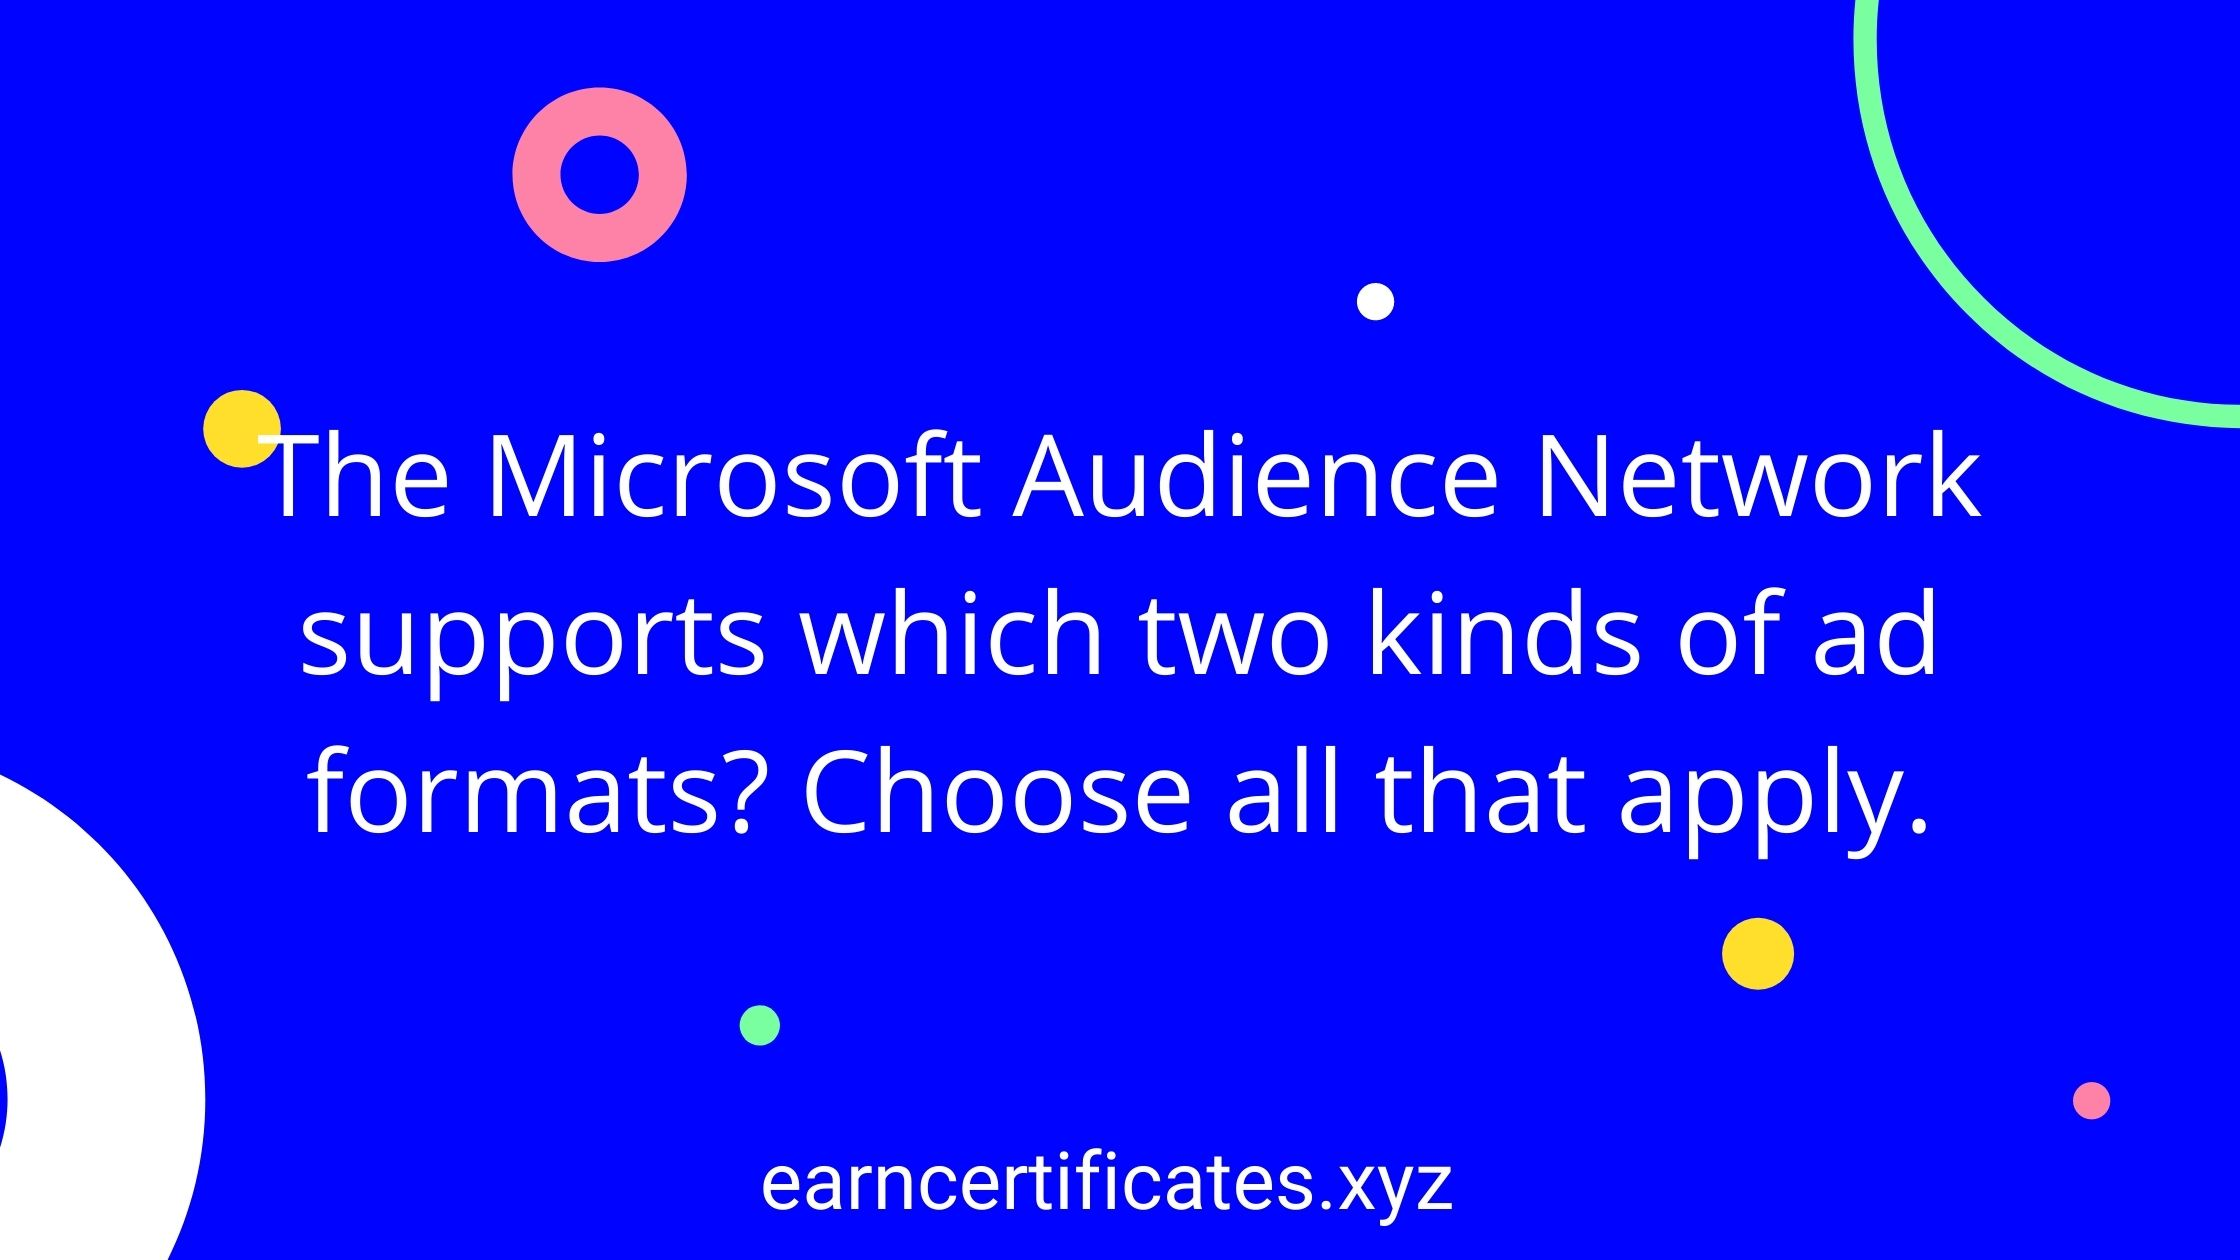 The Microsoft Audience Network supports which two kinds of ad formats? Choose all that apply.